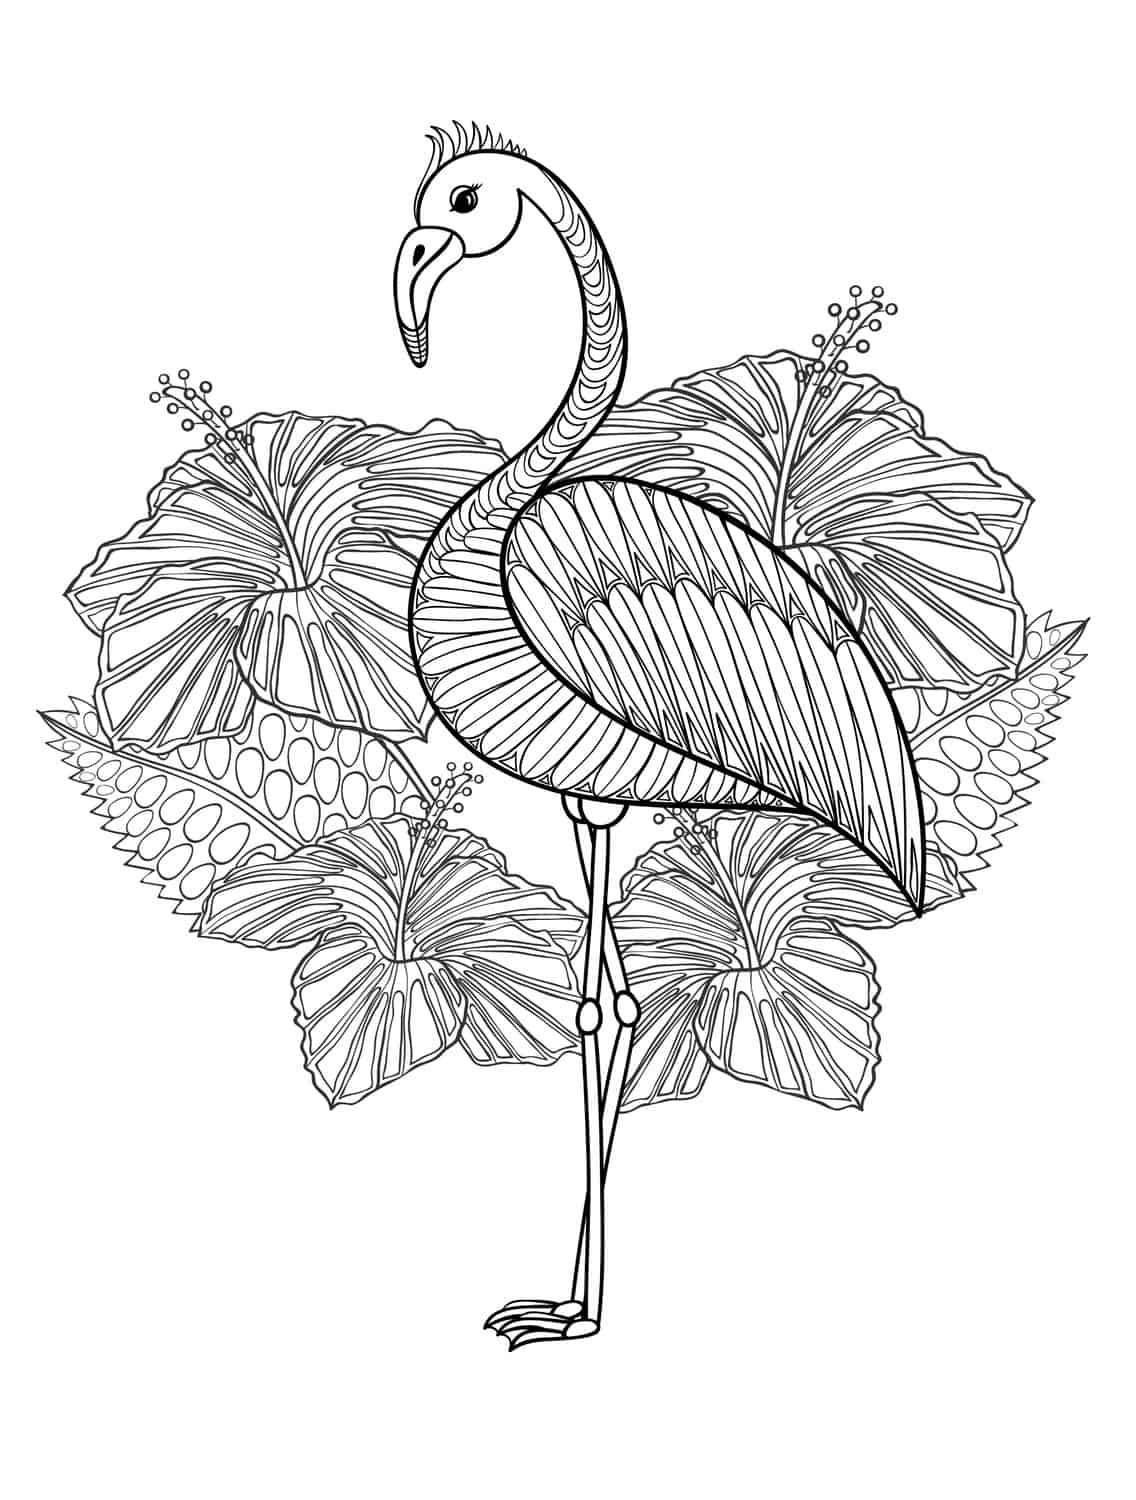 cute flamingo coloring page for adults to print at home - Flamingo Coloring Pages